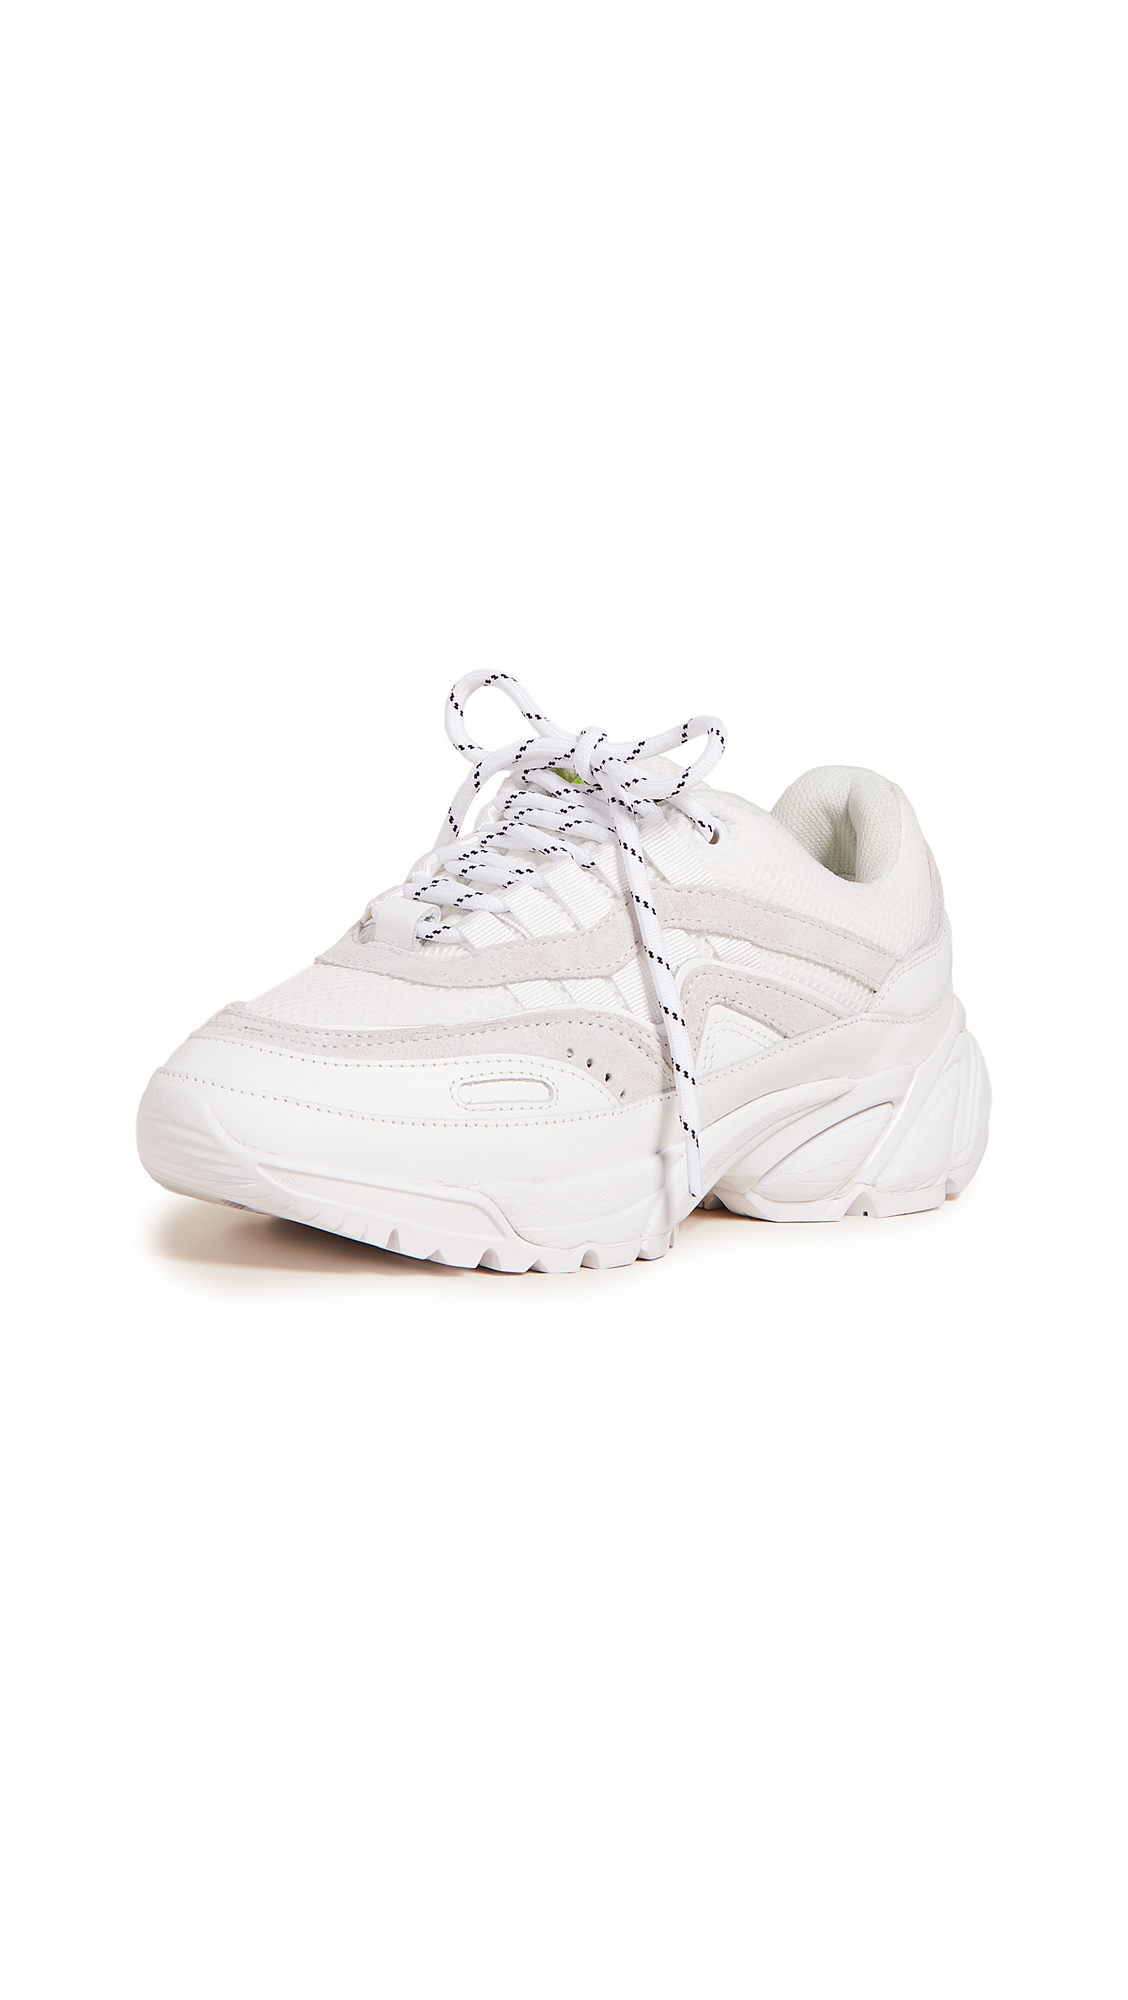 Axel Arigato Demo Runner Sneakers - White/Beige